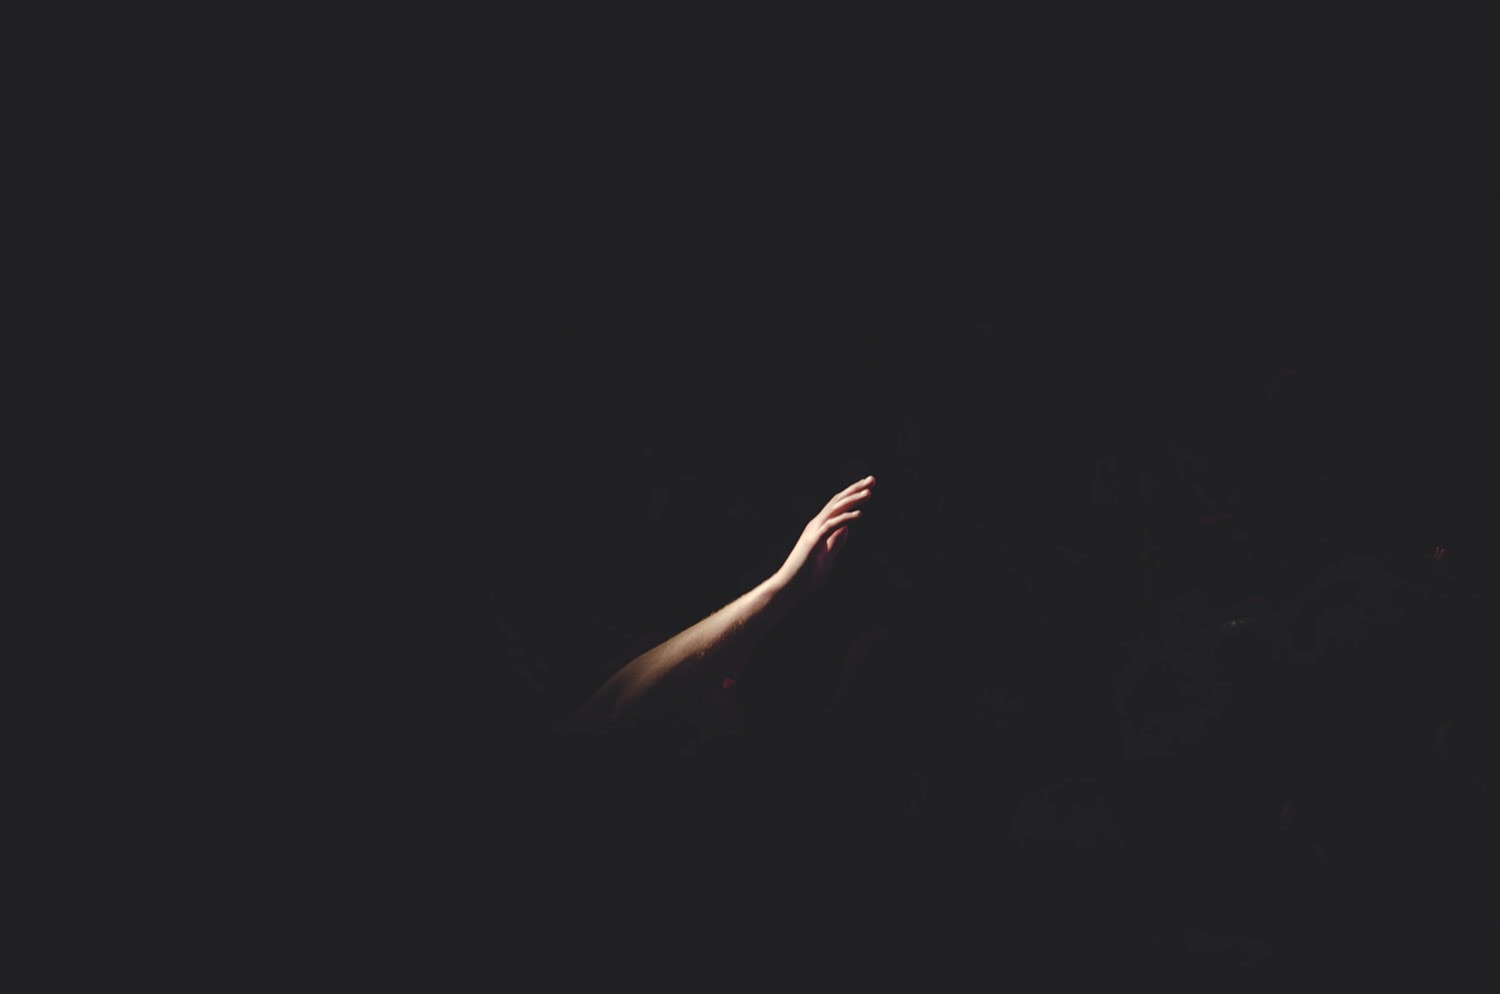 depression can make you feel like you are searching in the dark